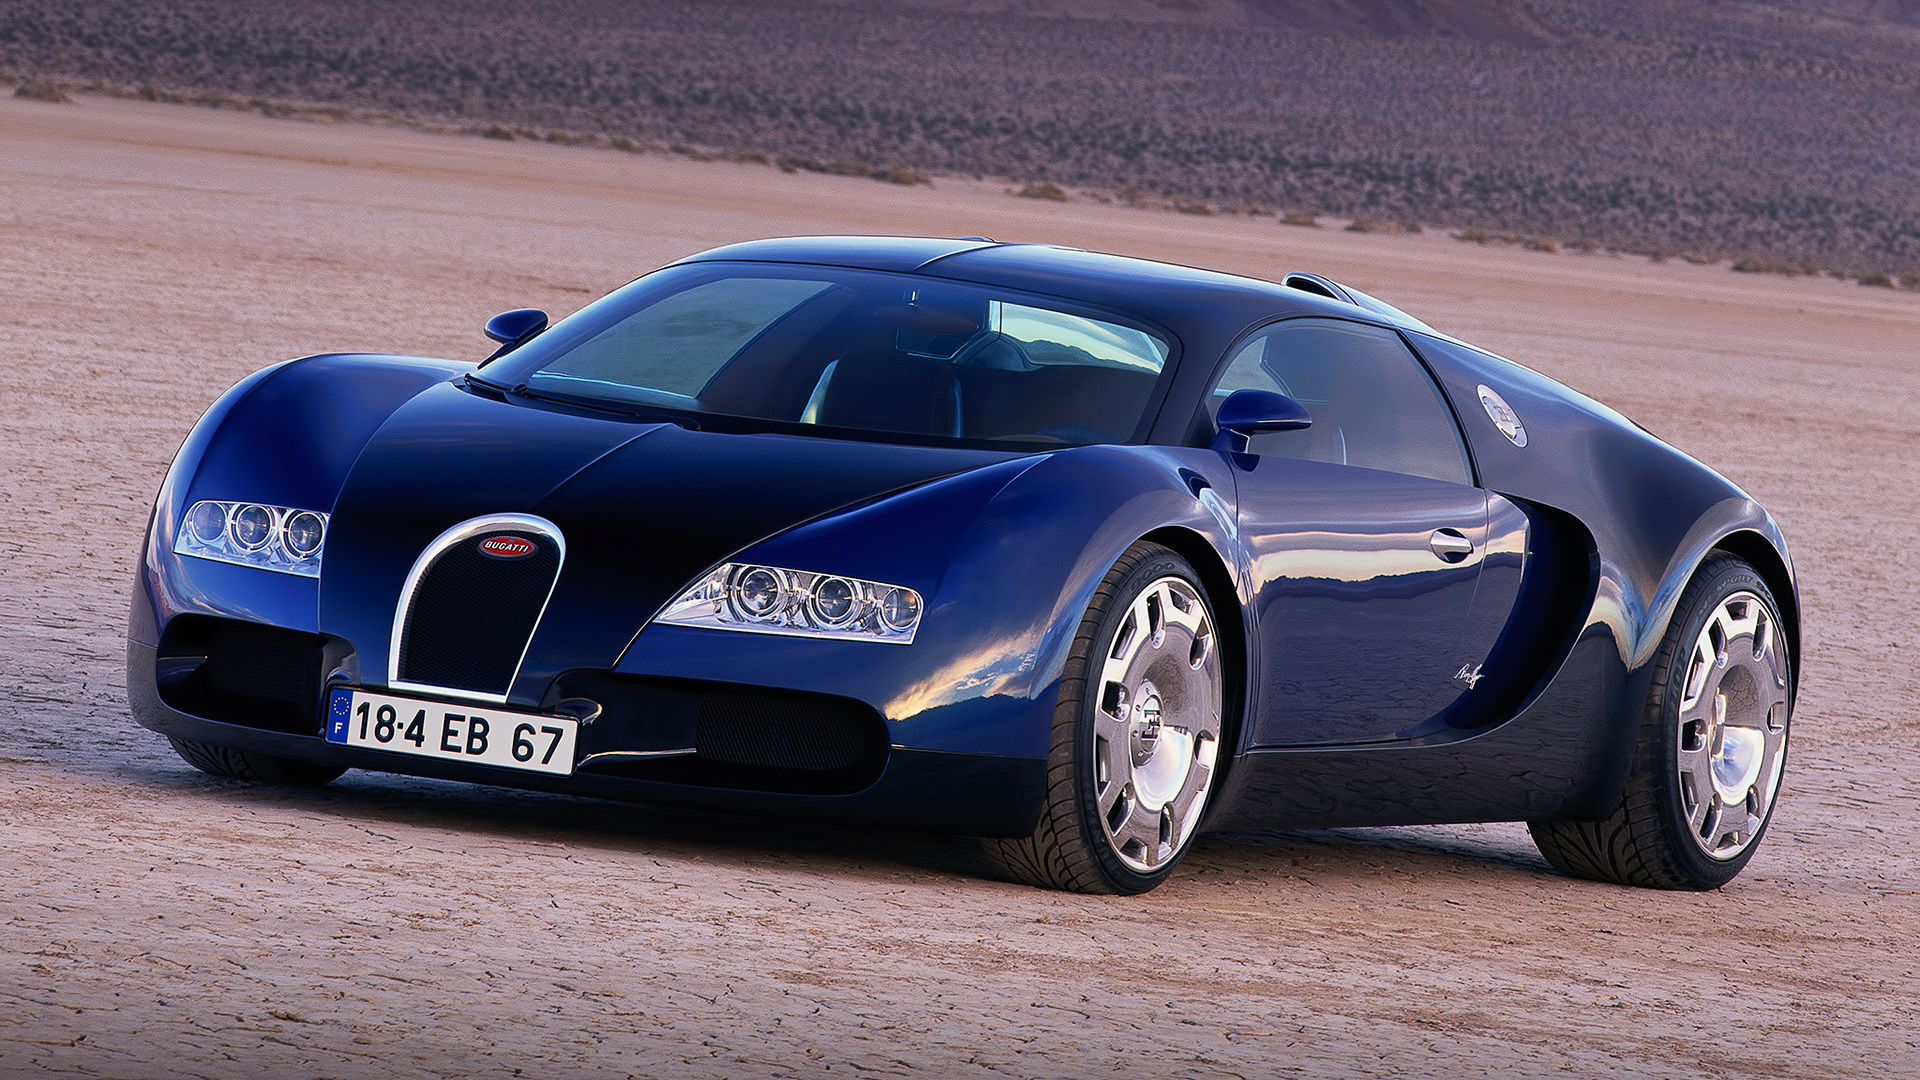 bugatti eb 18 4 veyron concept 1999 wallpapers and hd images car pixel. Black Bedroom Furniture Sets. Home Design Ideas